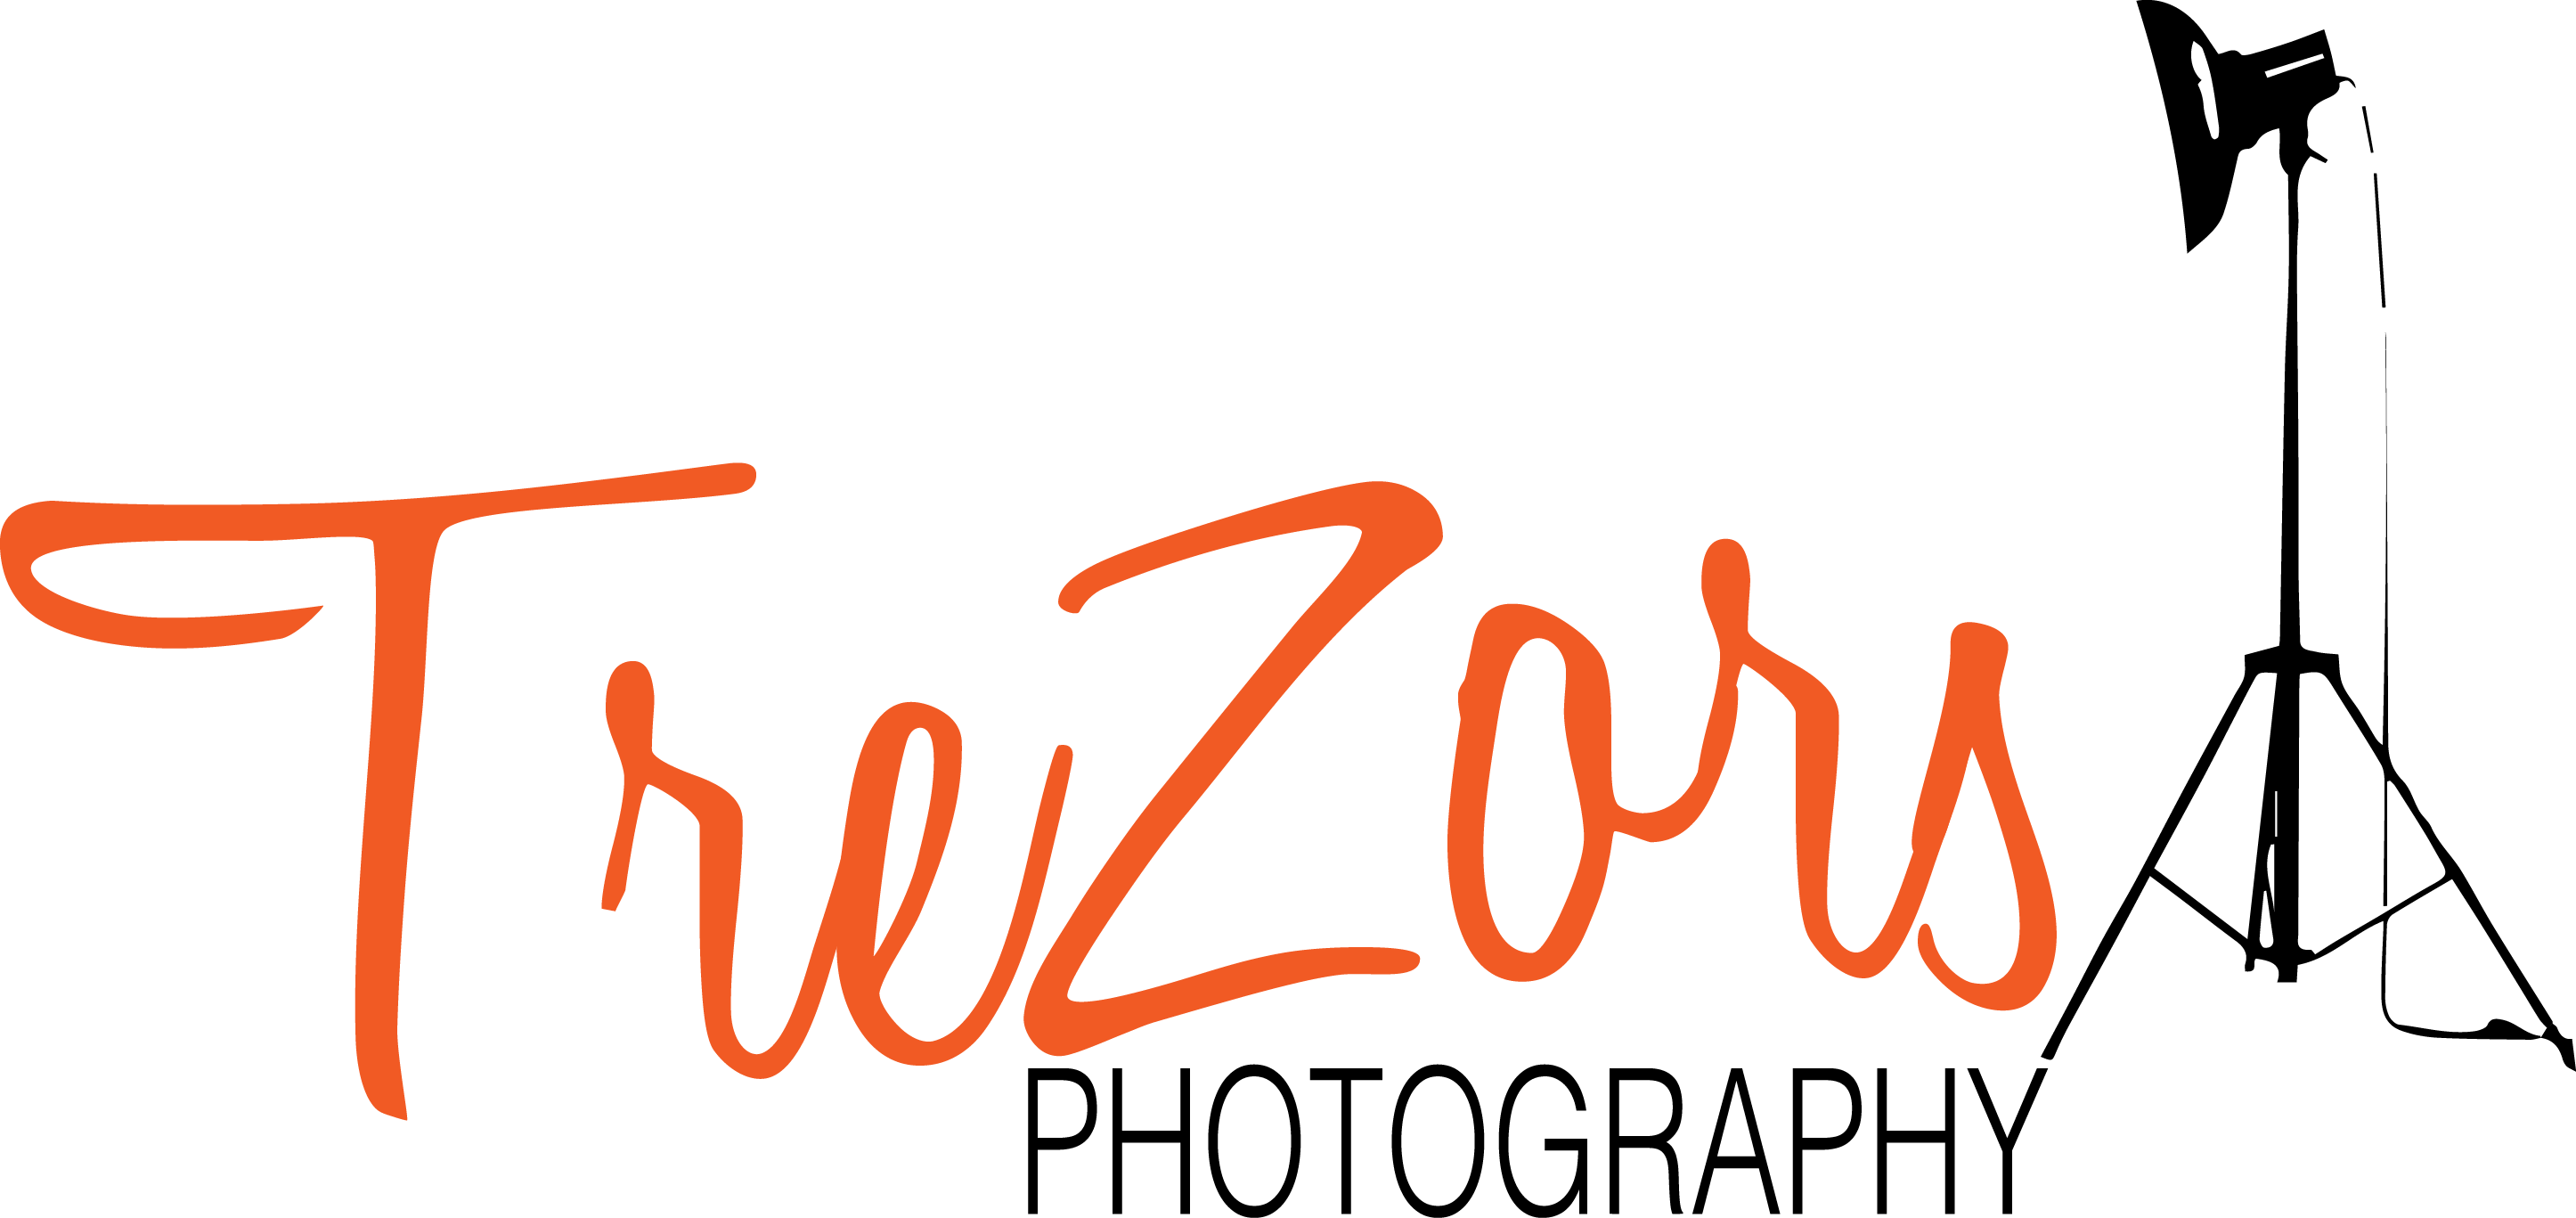 logo trezors photography noir